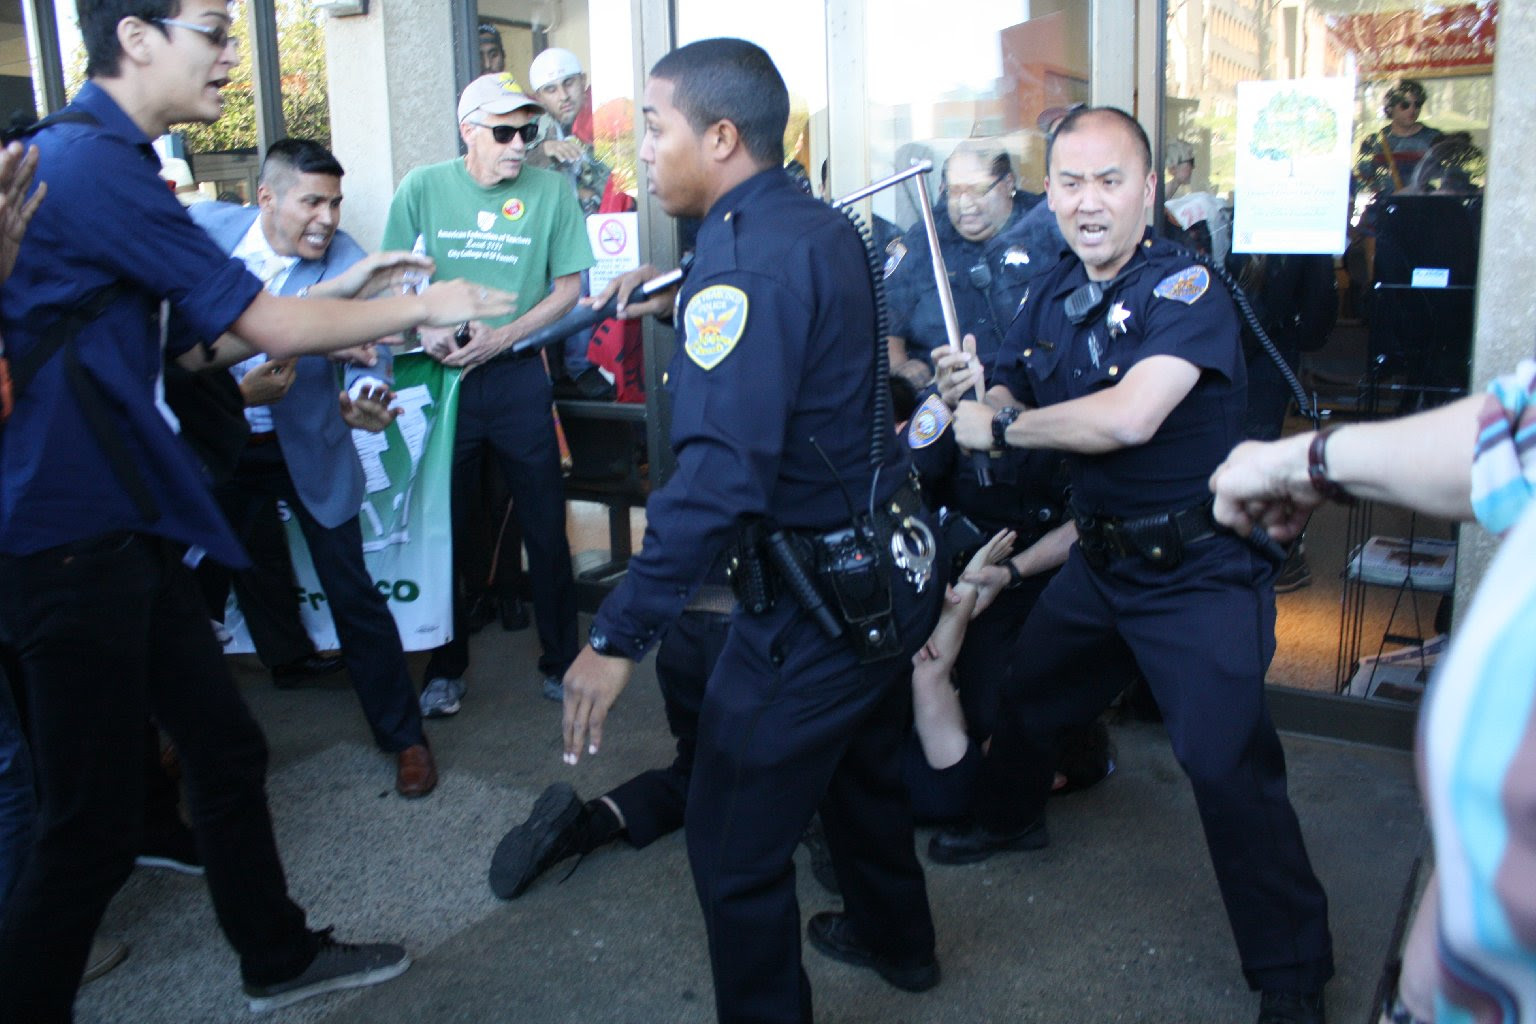 City College of San Francisco to Review Protest Violence ...